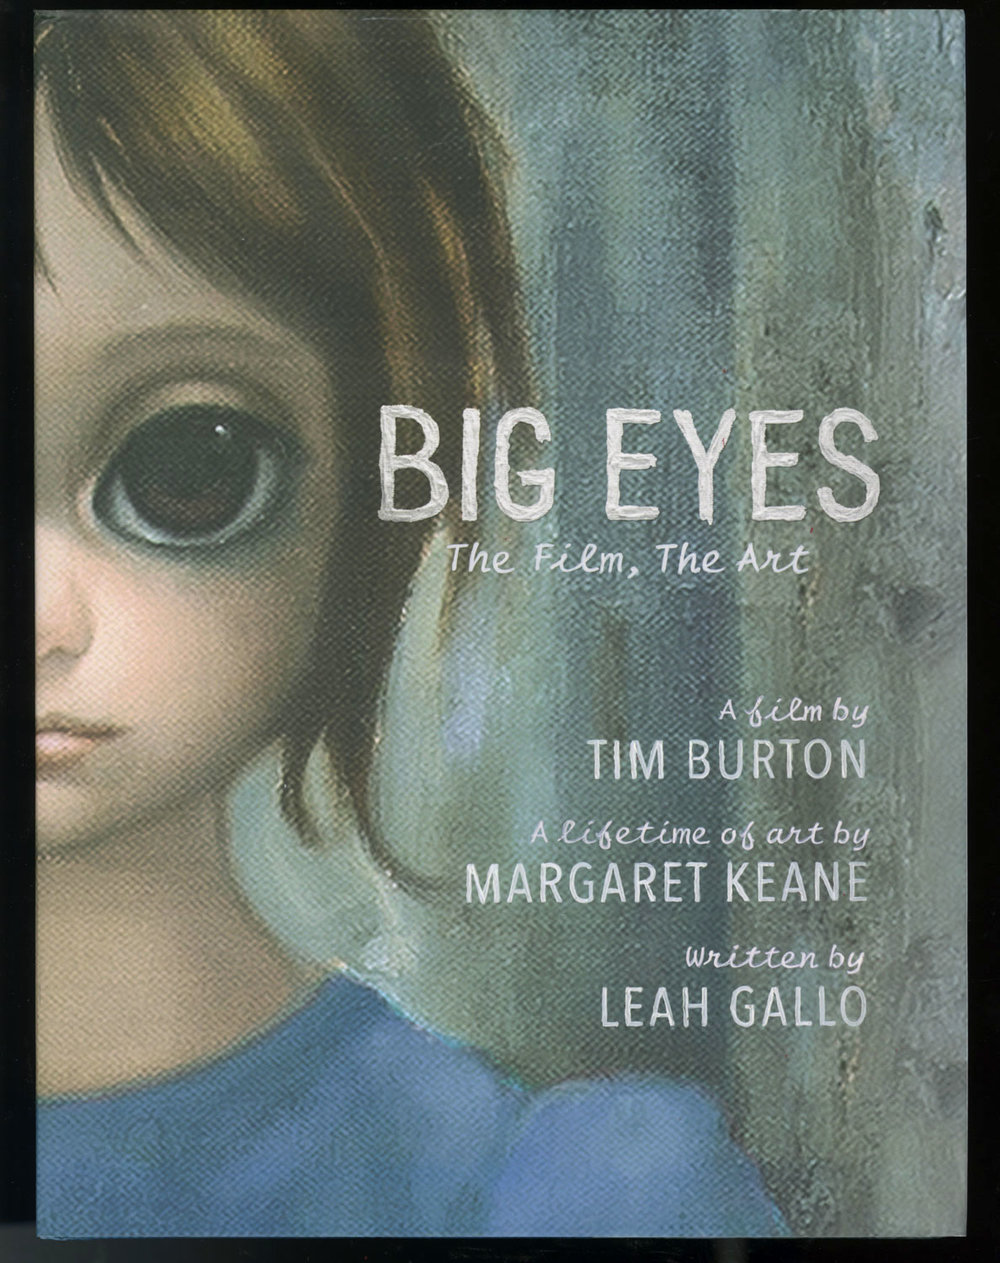 Big Eyes: The Film, The Art - Writer, Editor, Photographer© 2014 The Weinstein Companyhttp://www.parkablogs.com/content/book-review-big-eyes-film-art